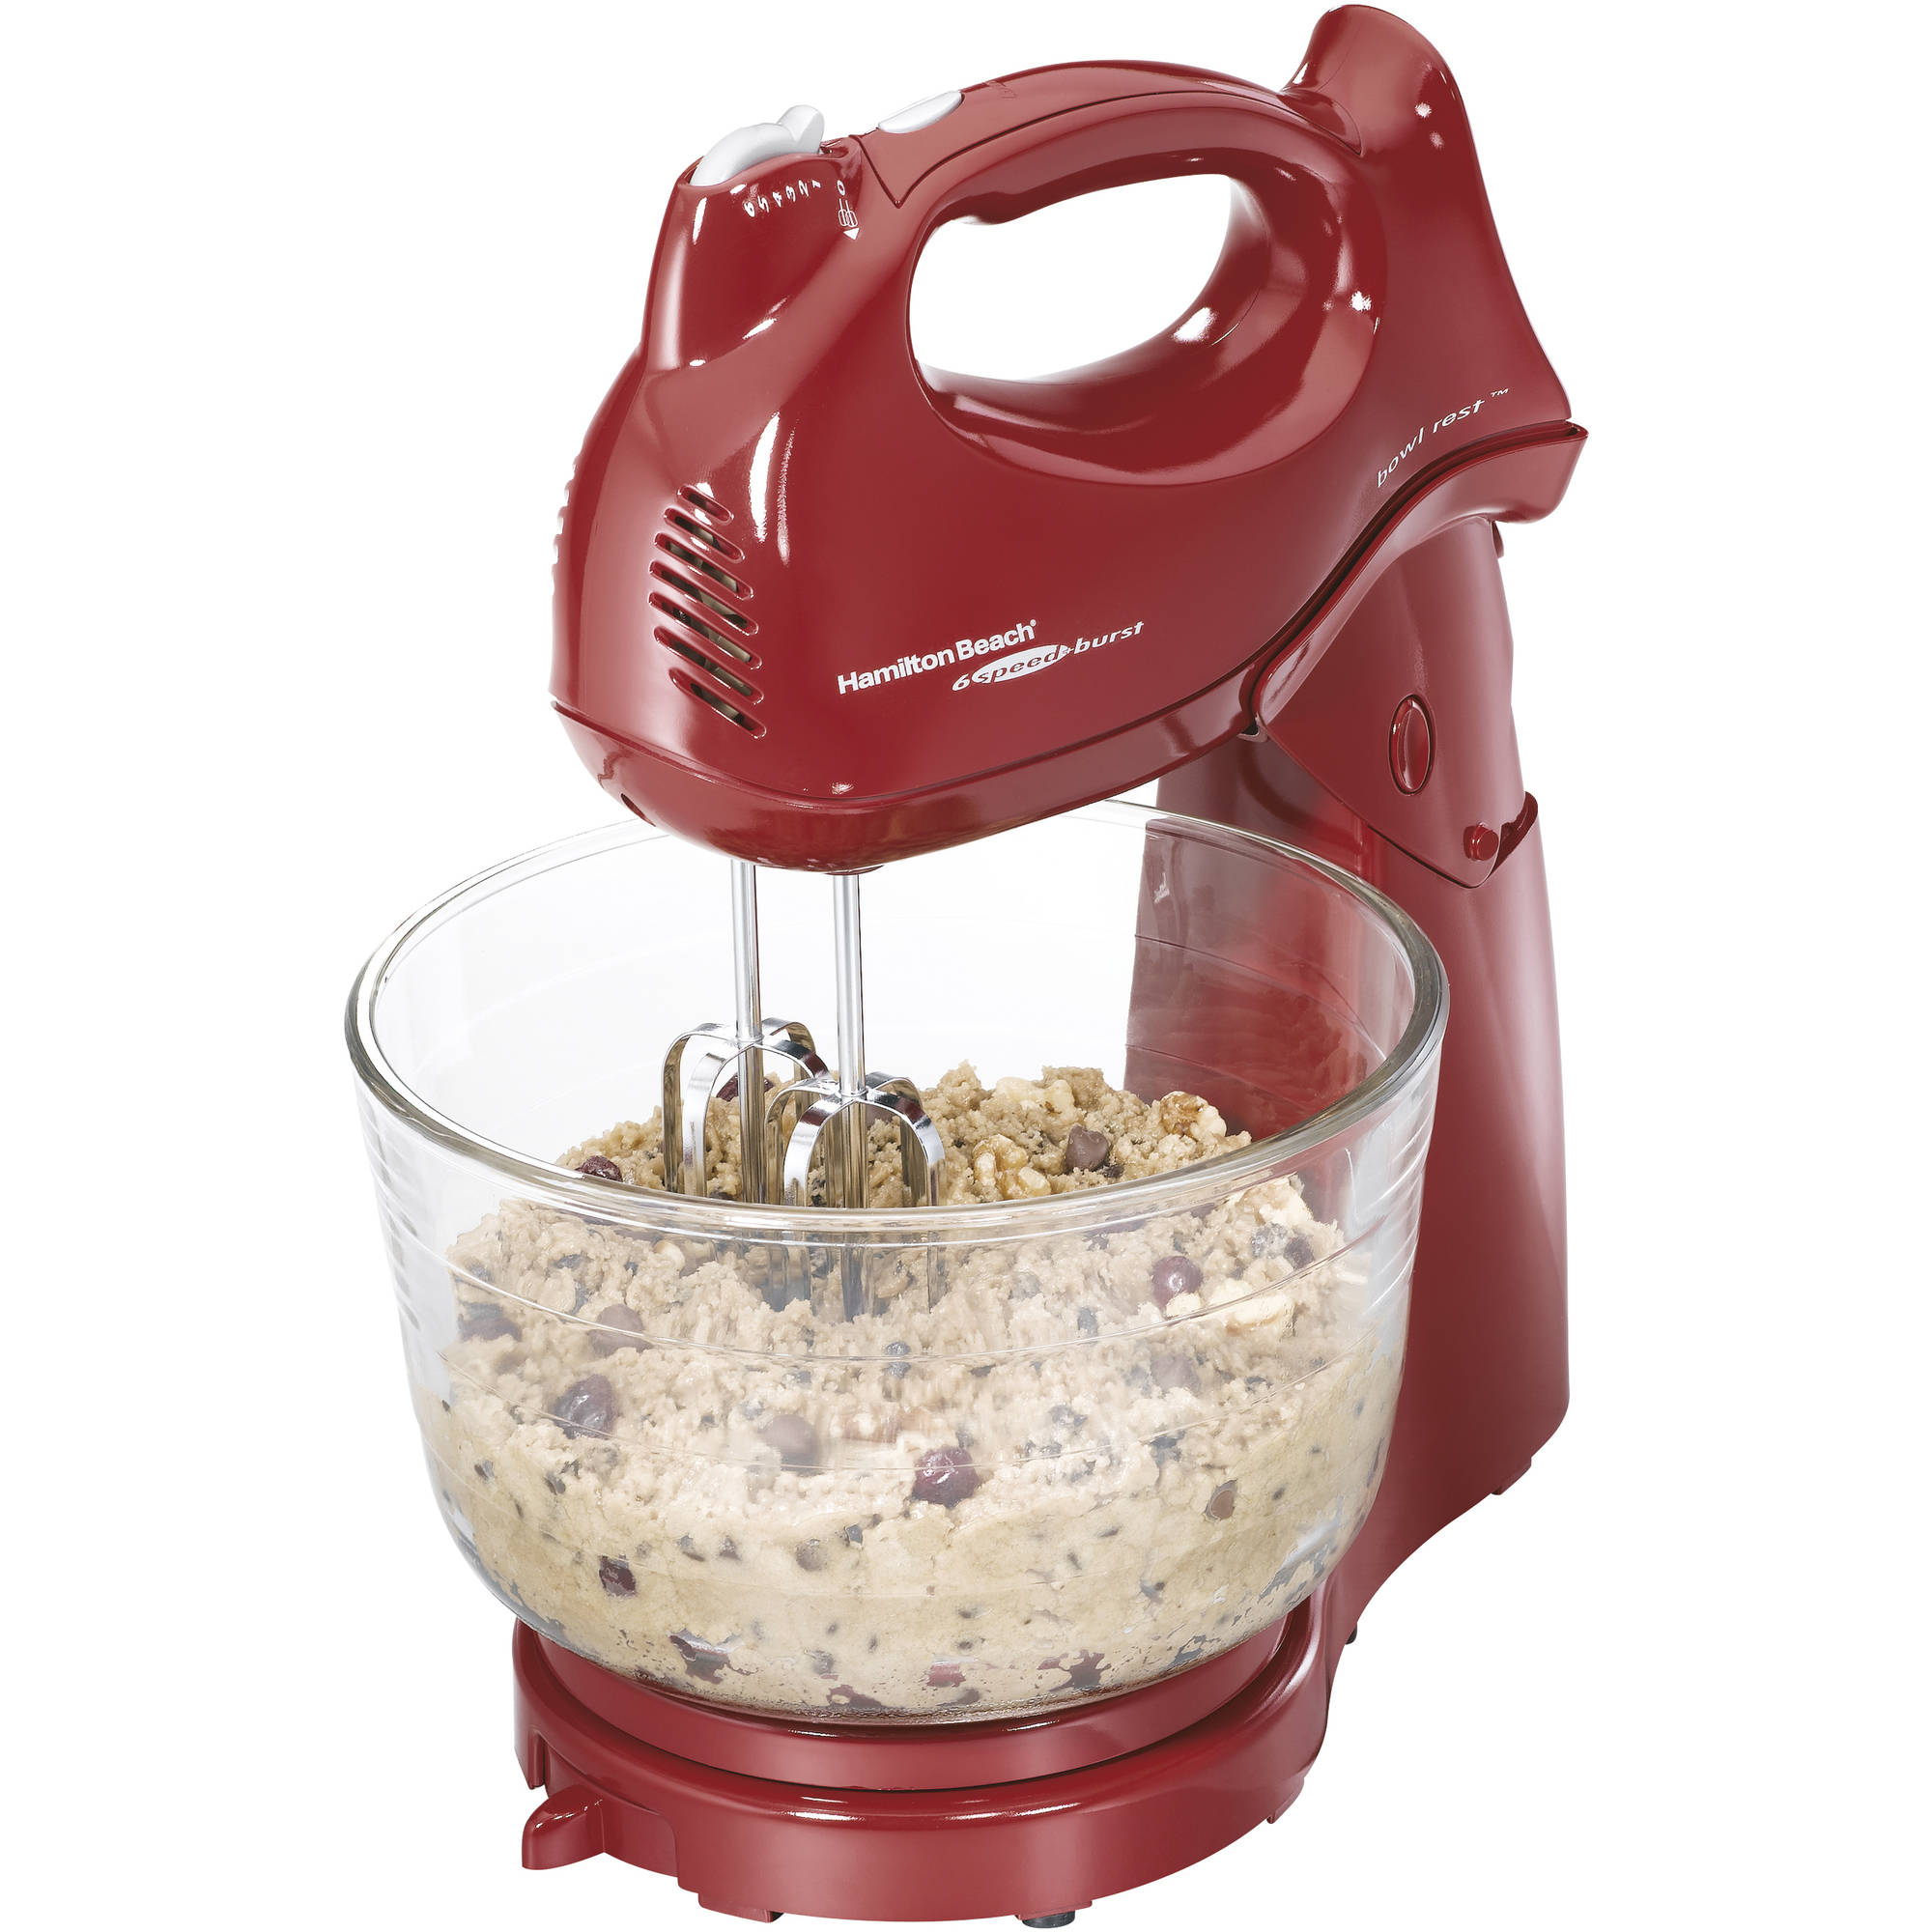 Kitchenaid Stand Mixer Sale Walmart